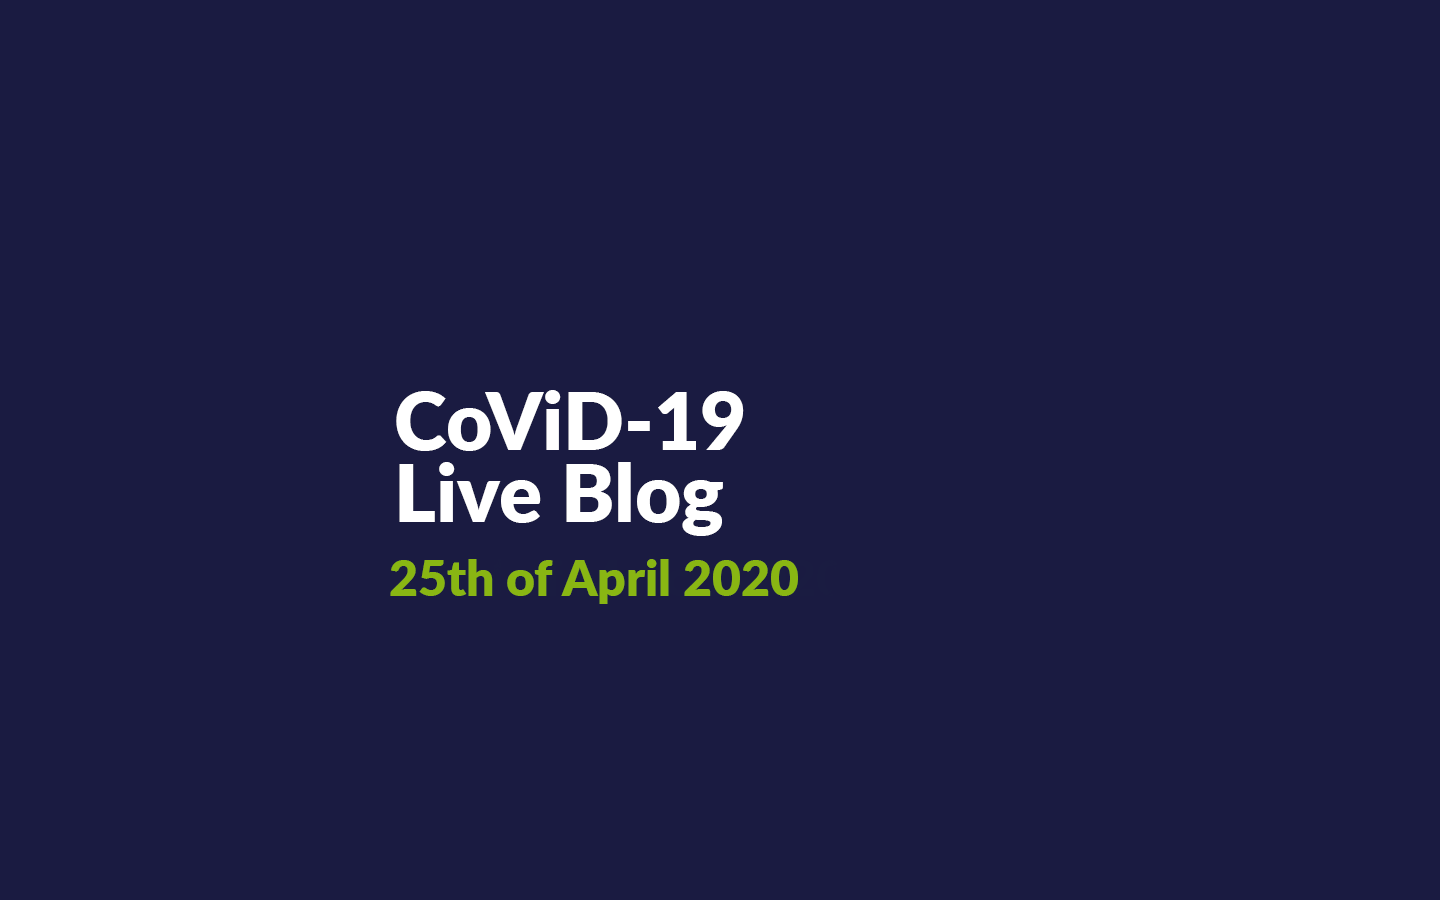 04-25-2020 | Live Blog for CoViD-19 Updates in Germany in English